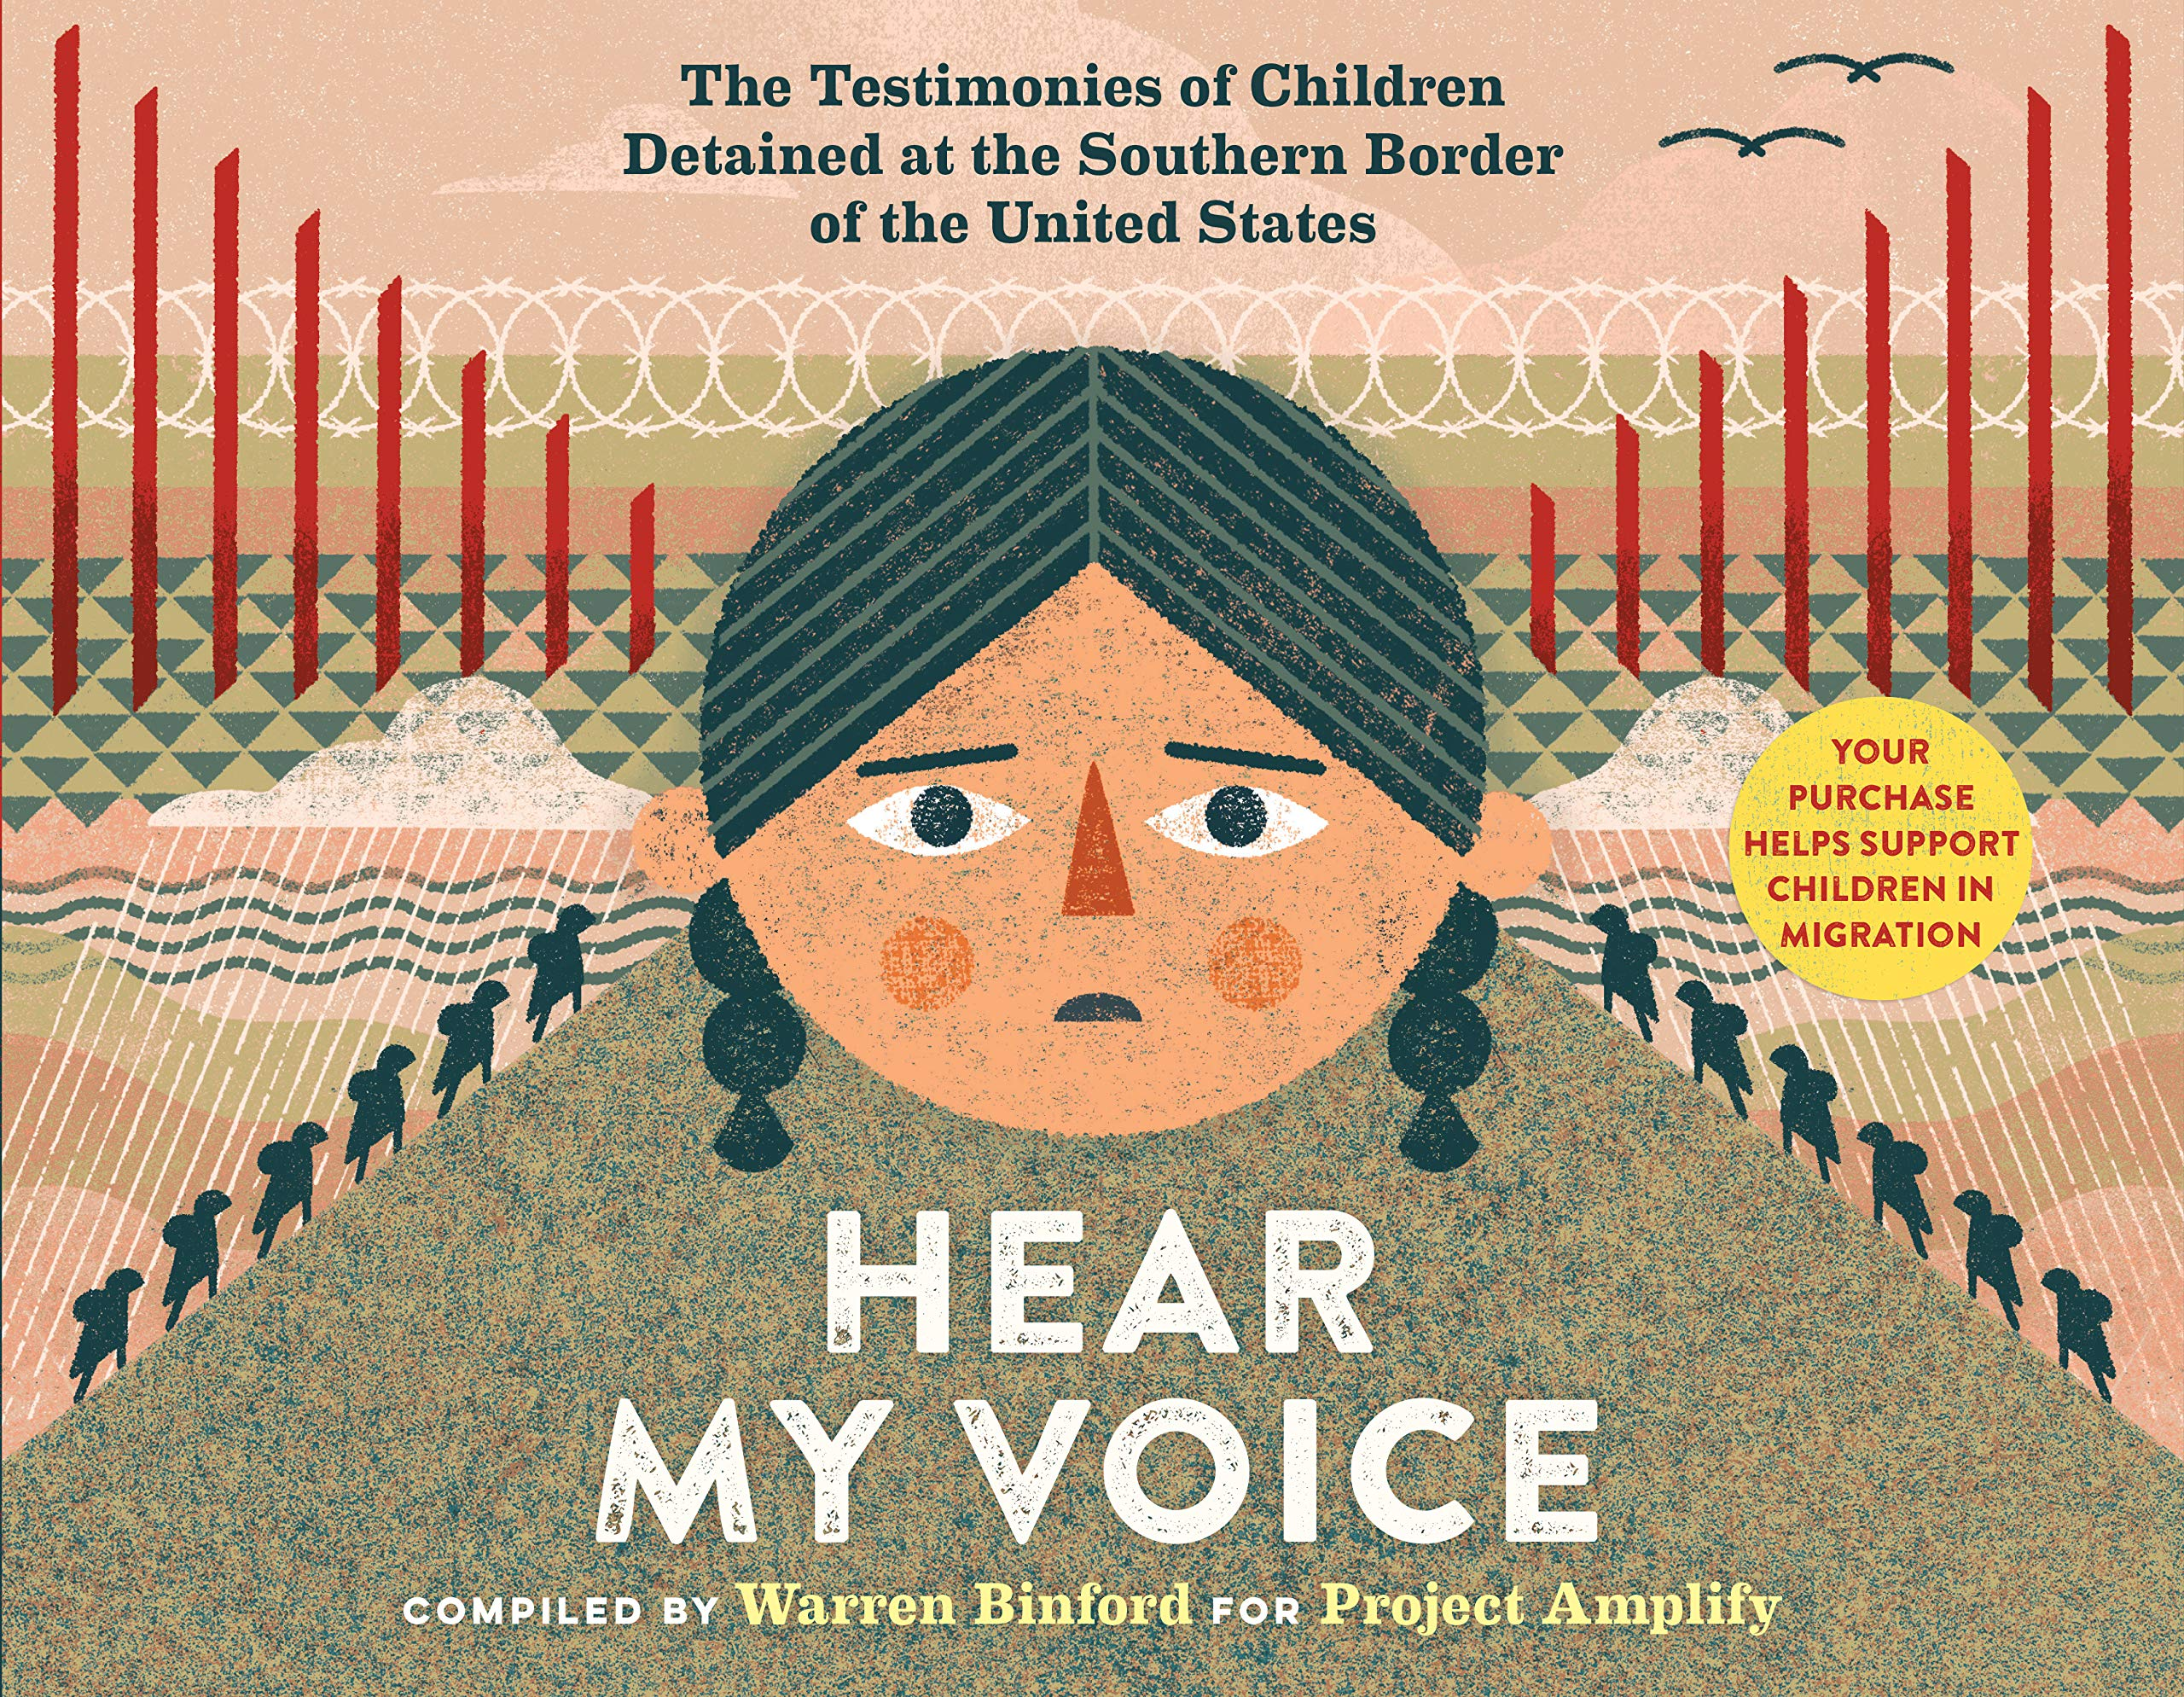 Amazon.com: Hear My Voice/Escucha mi voz: The Testimonies of Children  Detained at the Southern Border of the United States (English and Spanish  Edition) (9781523513482): Binford, Warren, Bochenek, Michael Garcia: Books